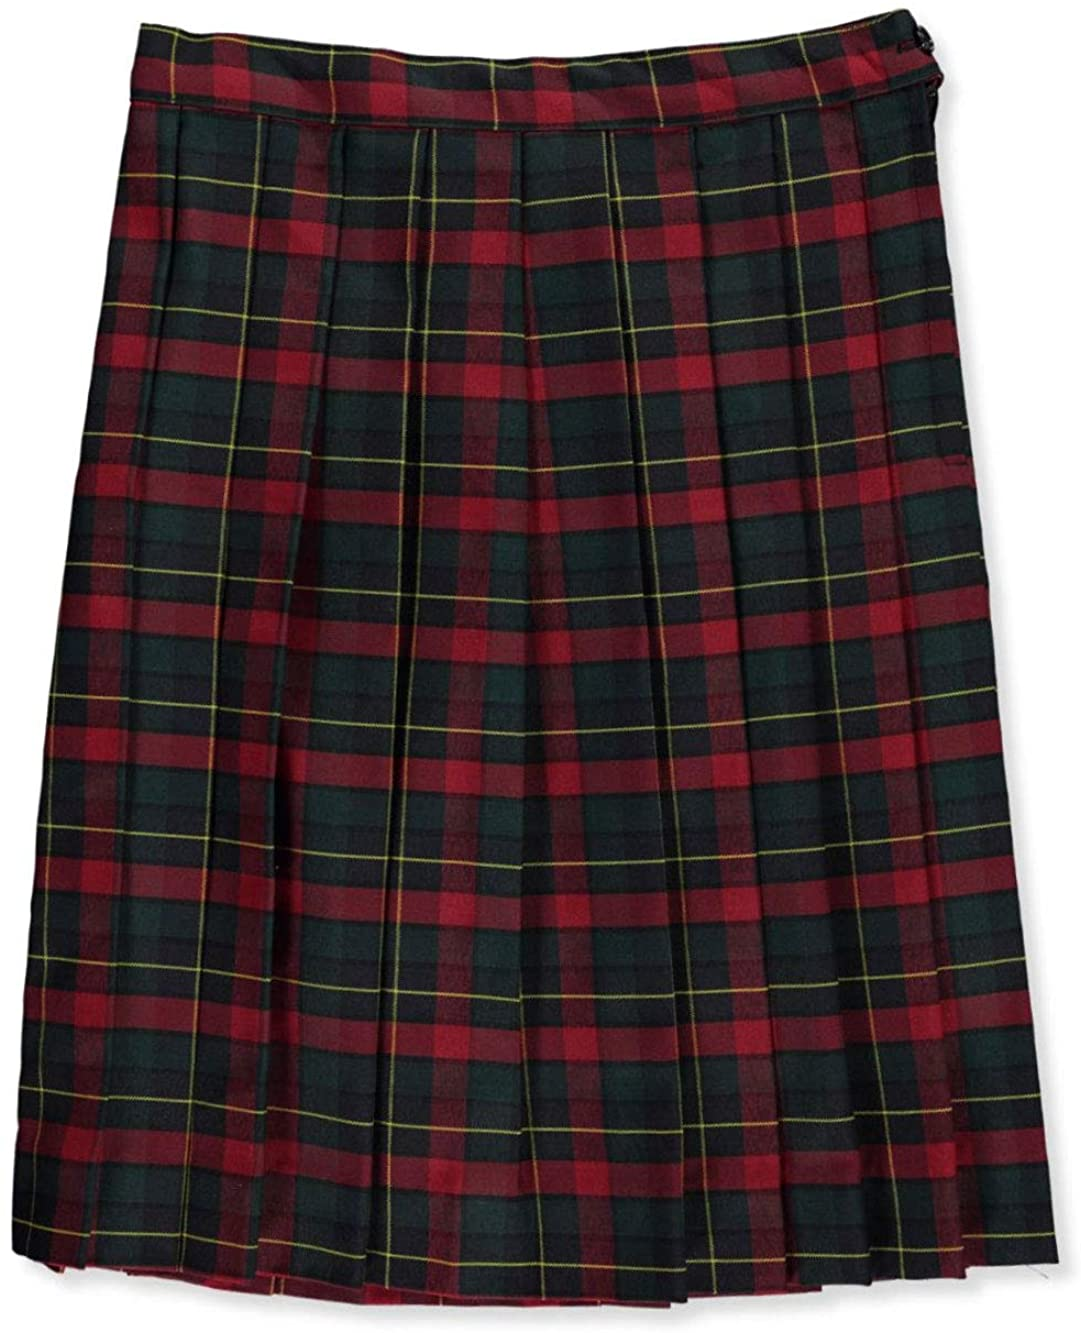 Bee Jays Special Order Cookie's Brand Girls' Pleated Skirt